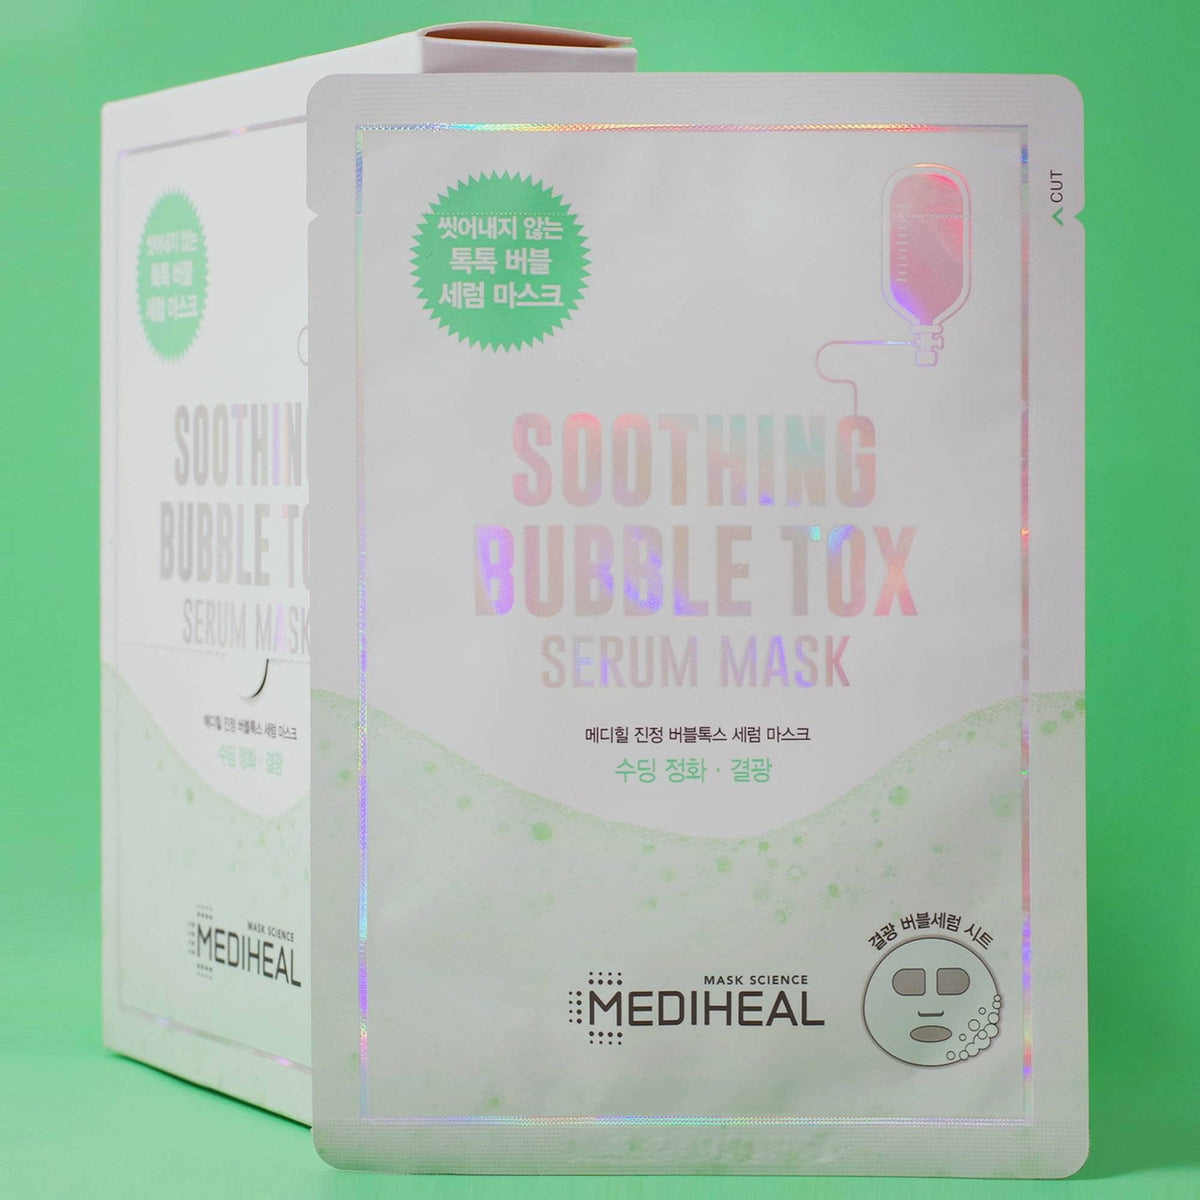 MEDIHEAL SOOTHING BUBBLETOX SERUM MASK, 10 sheets, 0.61 fl.oz (18ml)